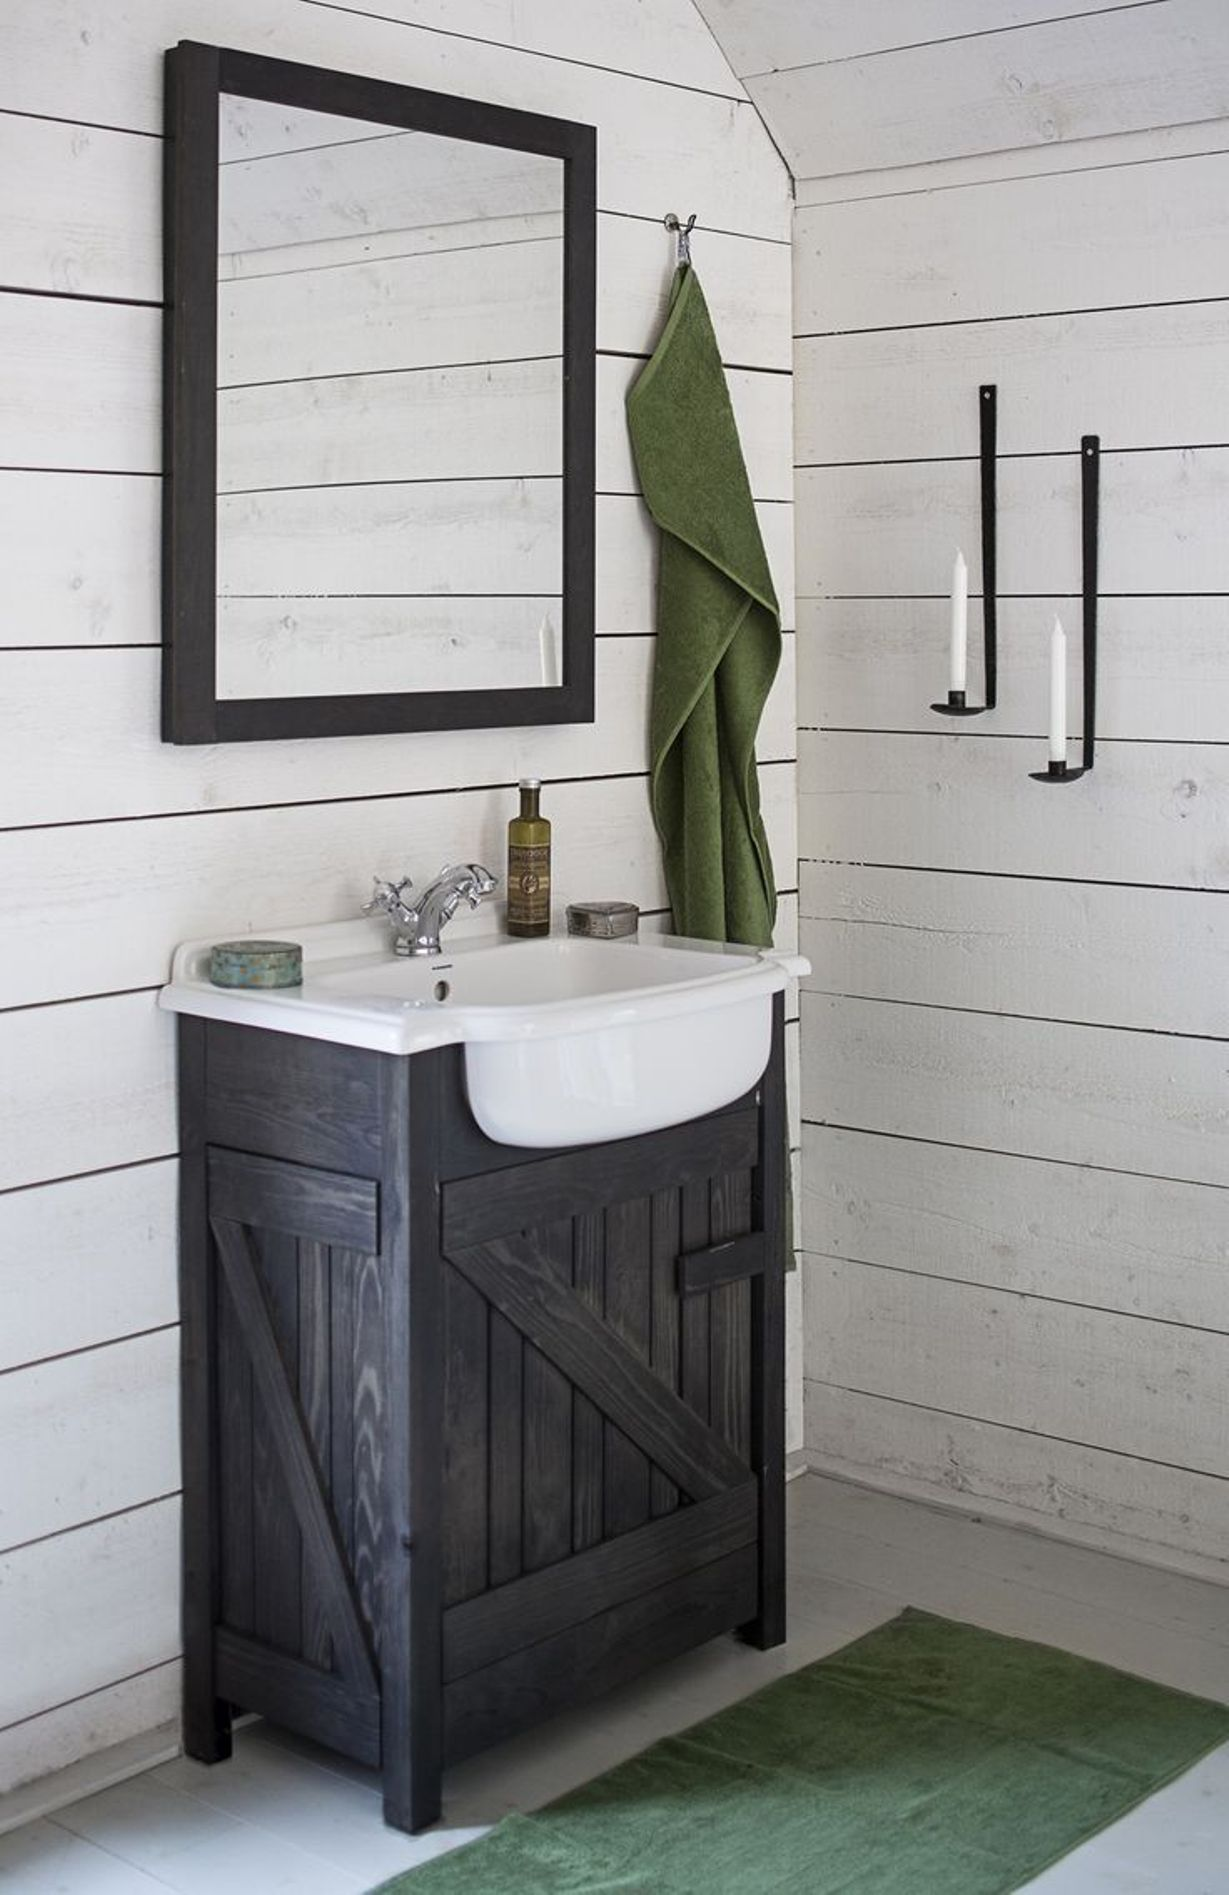 Small Bathroom Vanities Ideas Large Rustic Bathroom Vanities With Two White Mirrors And Sconce